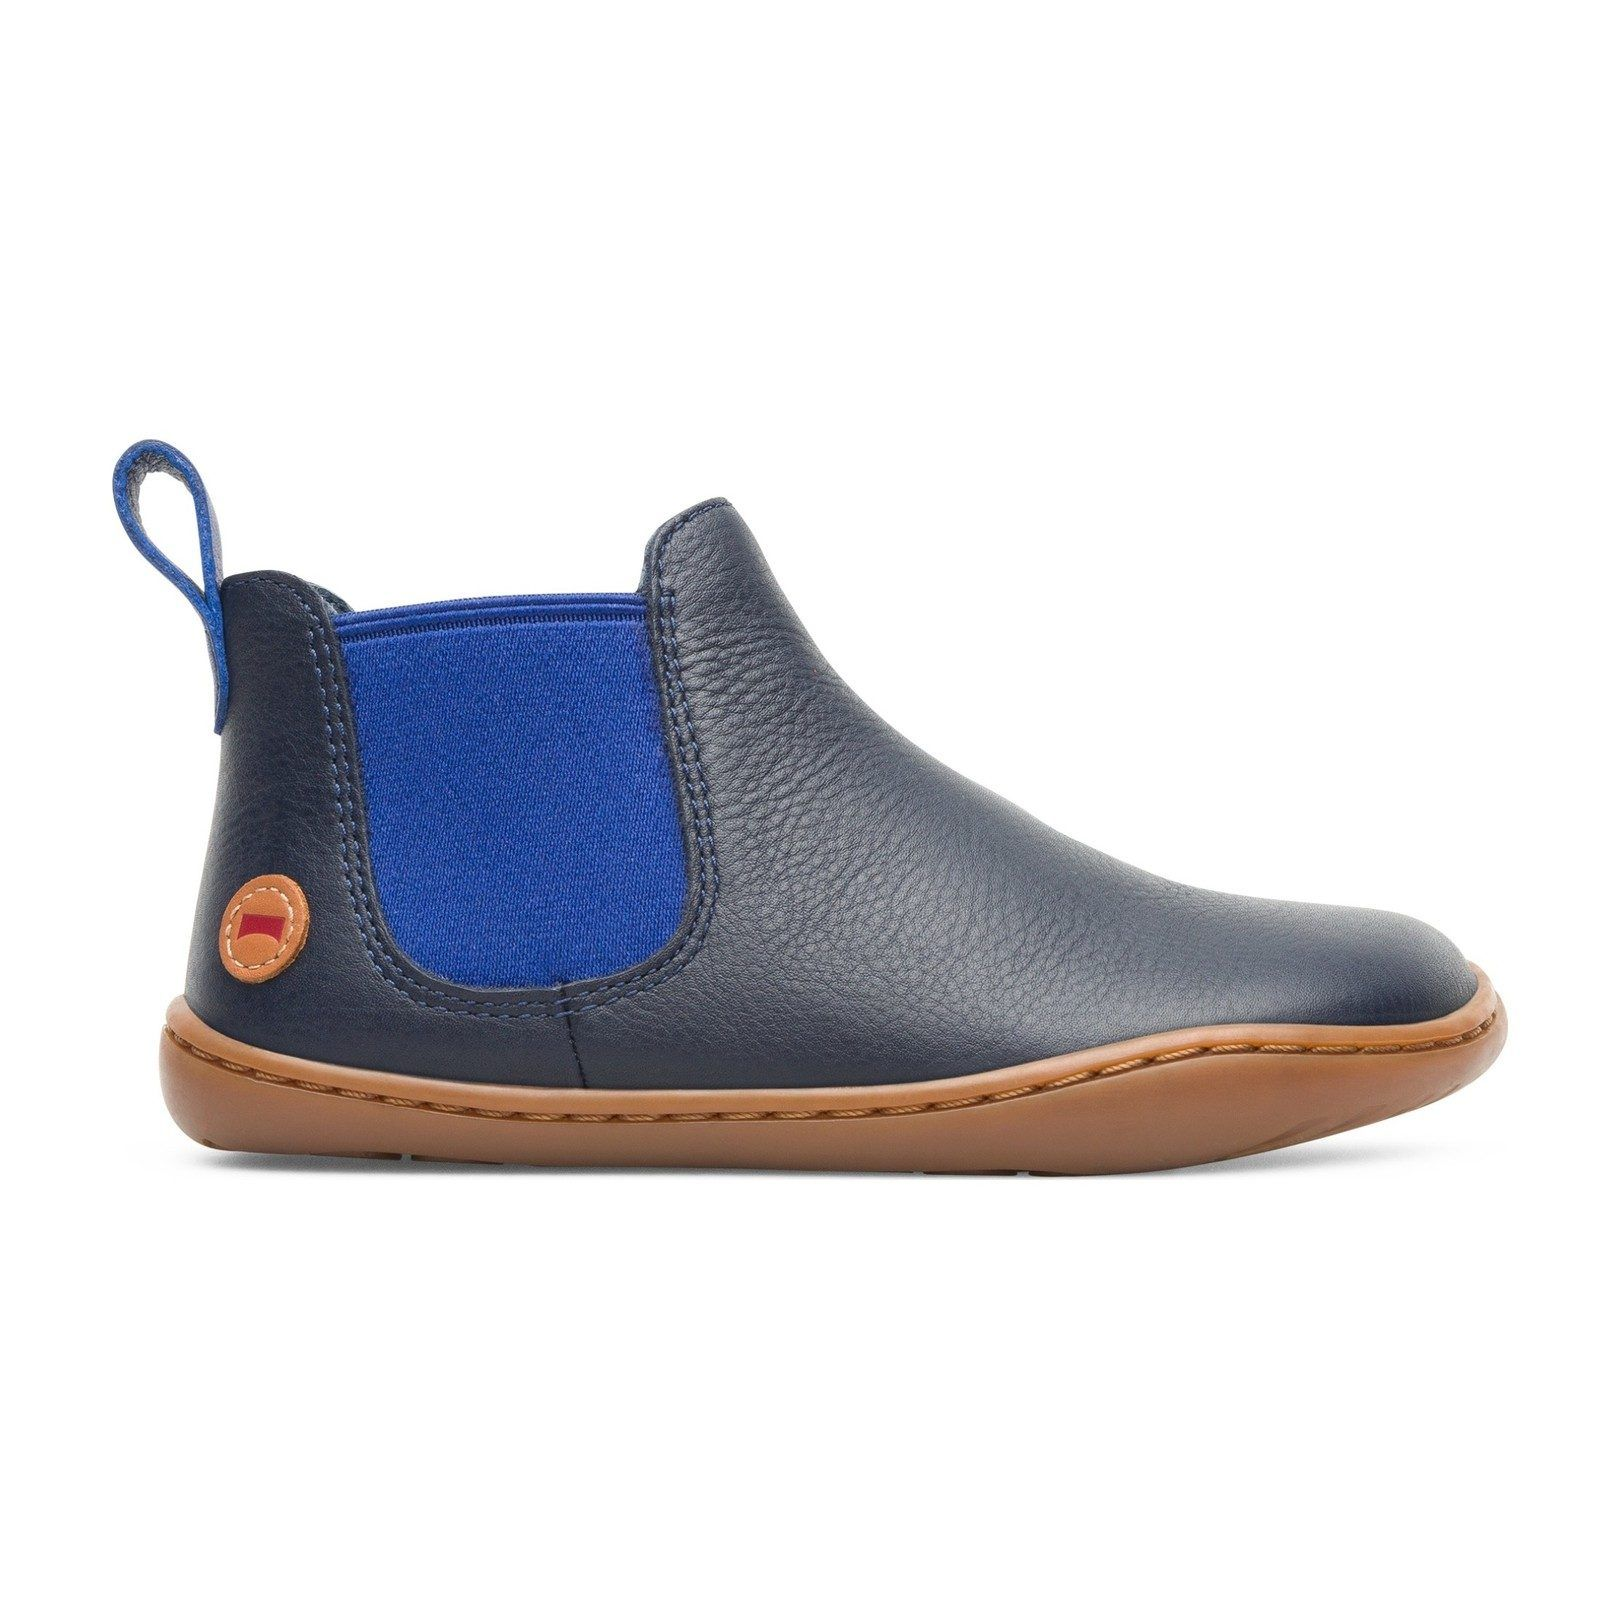 Photo of Peu Chelsea Boot, Blue